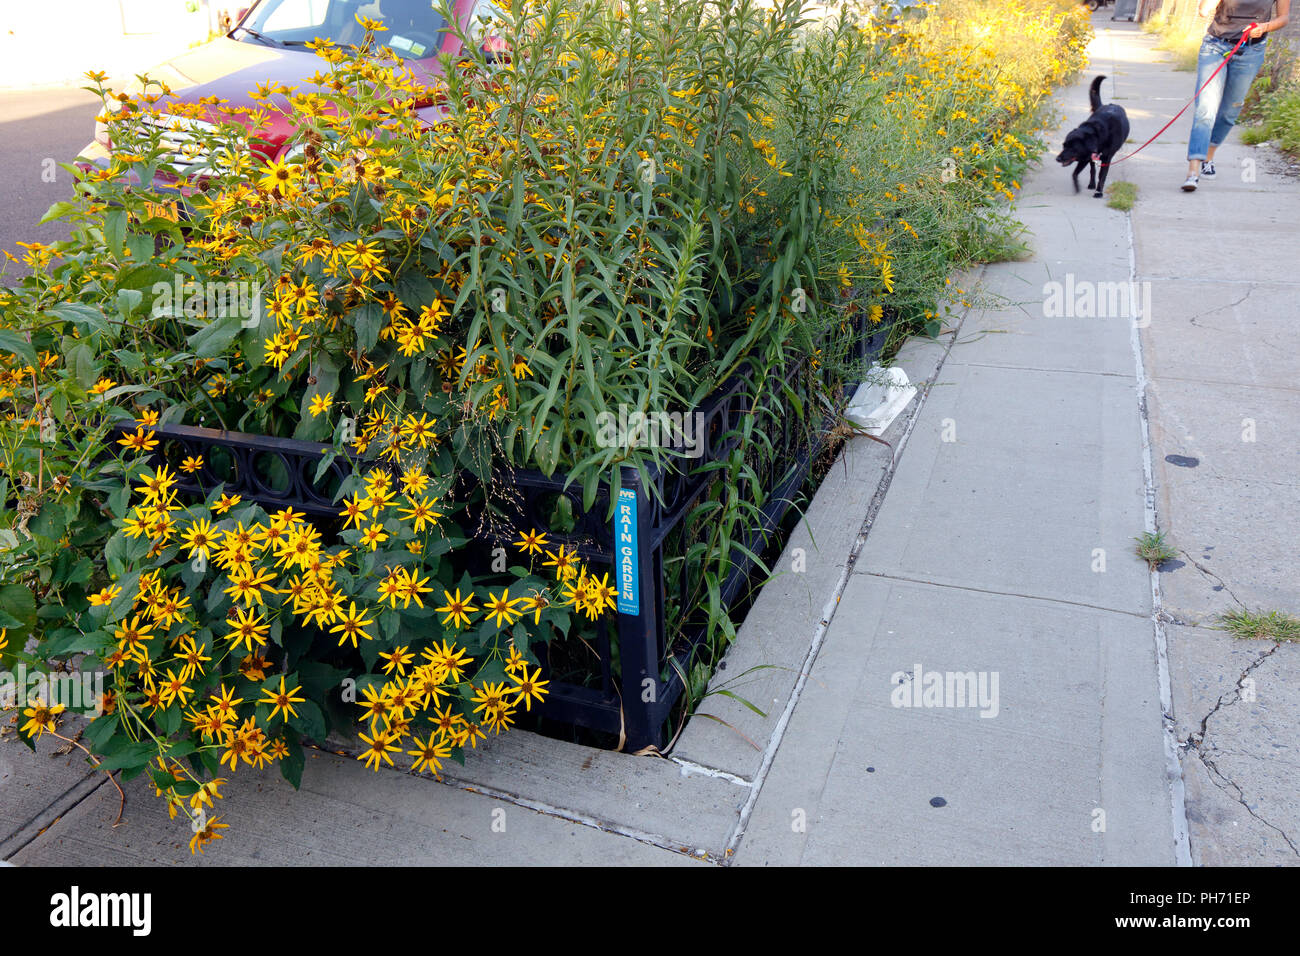 a-nyc-rain-garden-filled-with-flowers-rain-gardens-are-designed-to-interdict-and-divert-the-flow-of-stormwater-away-from-sewer-systems-and-waterways-PH71EP.jpg